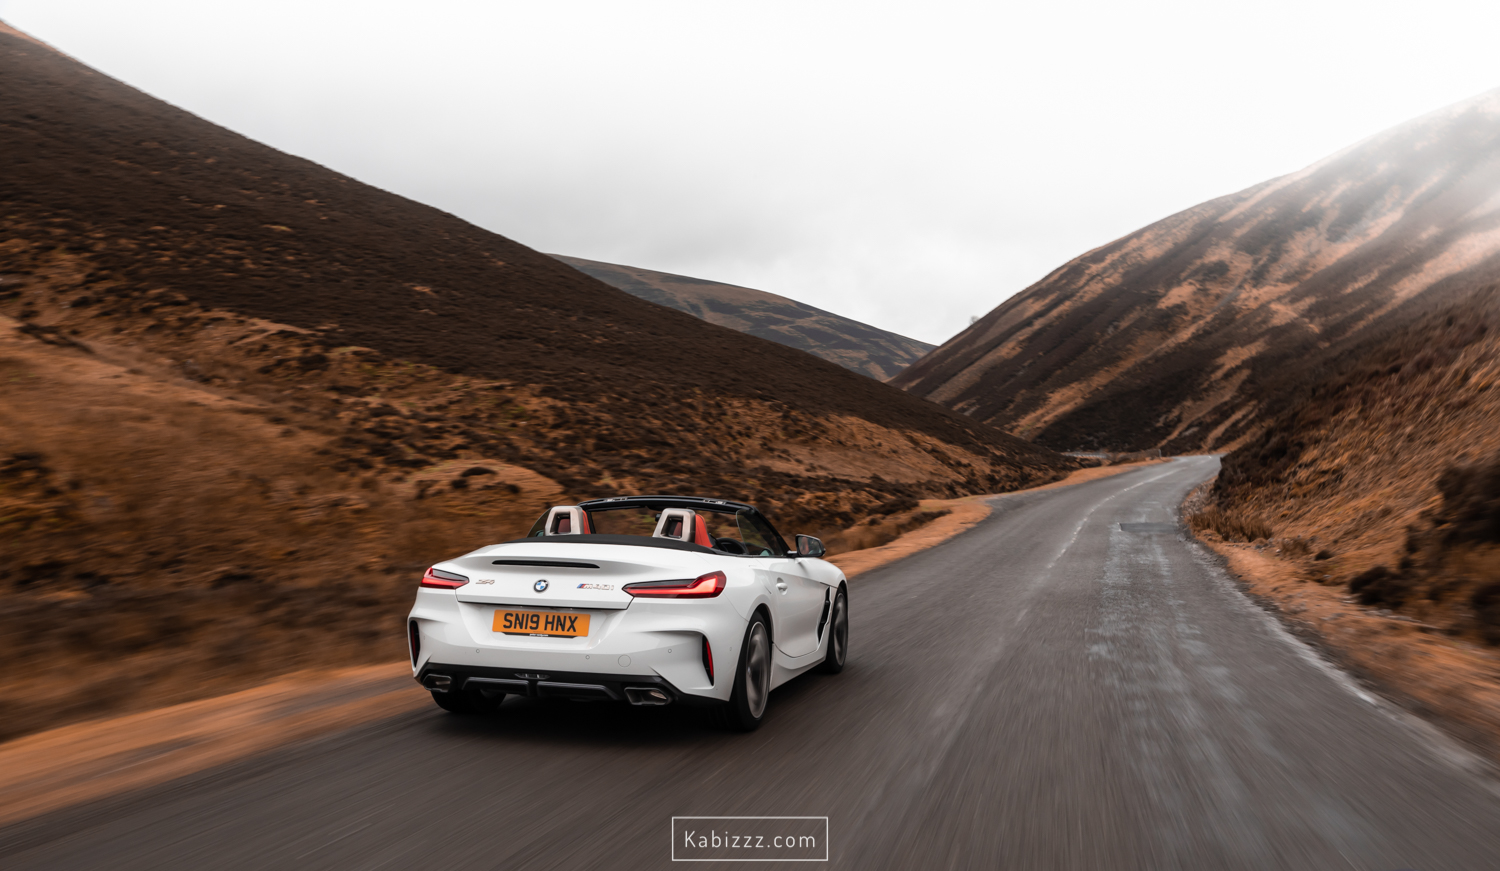 2019_bmw_z4_m40i_automotivephotography_kabizzz-14.jpg